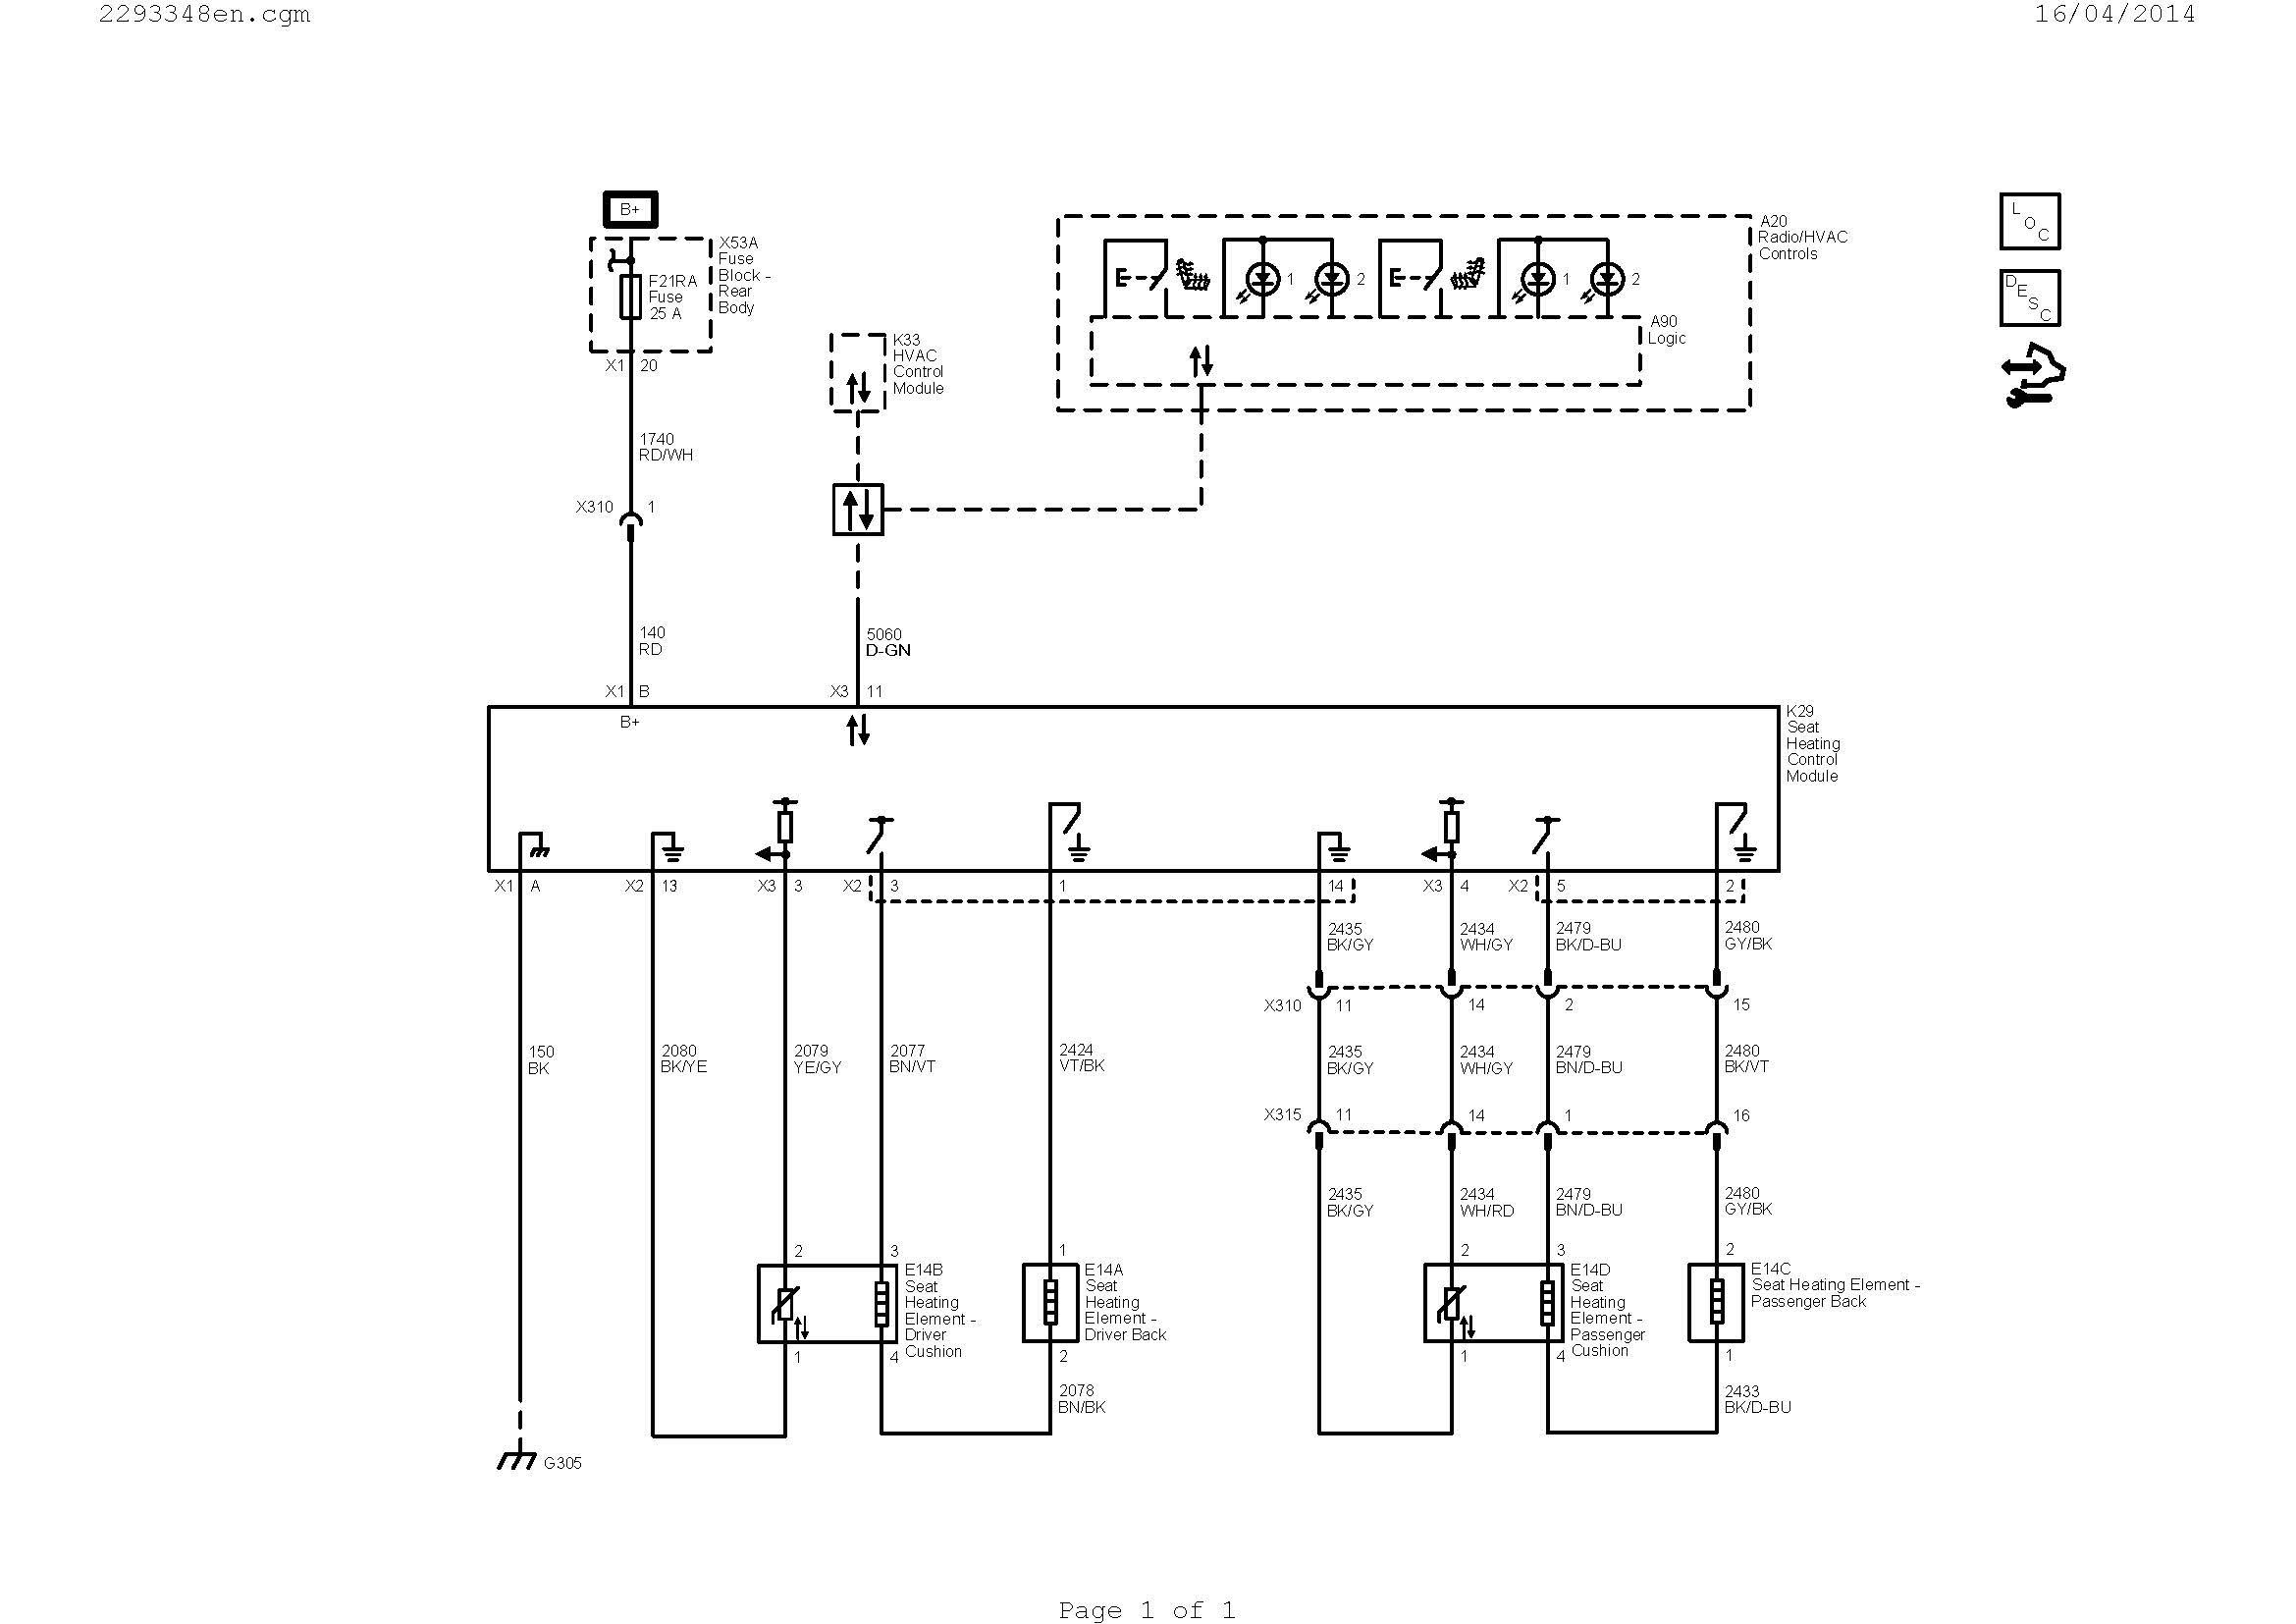 hvac wiring diagram Collection-Wiring Diagram Car Valid Wiring Diagram Ac Valid Hvac Diagram Best Hvac Diagram 0d – Wire 13-h